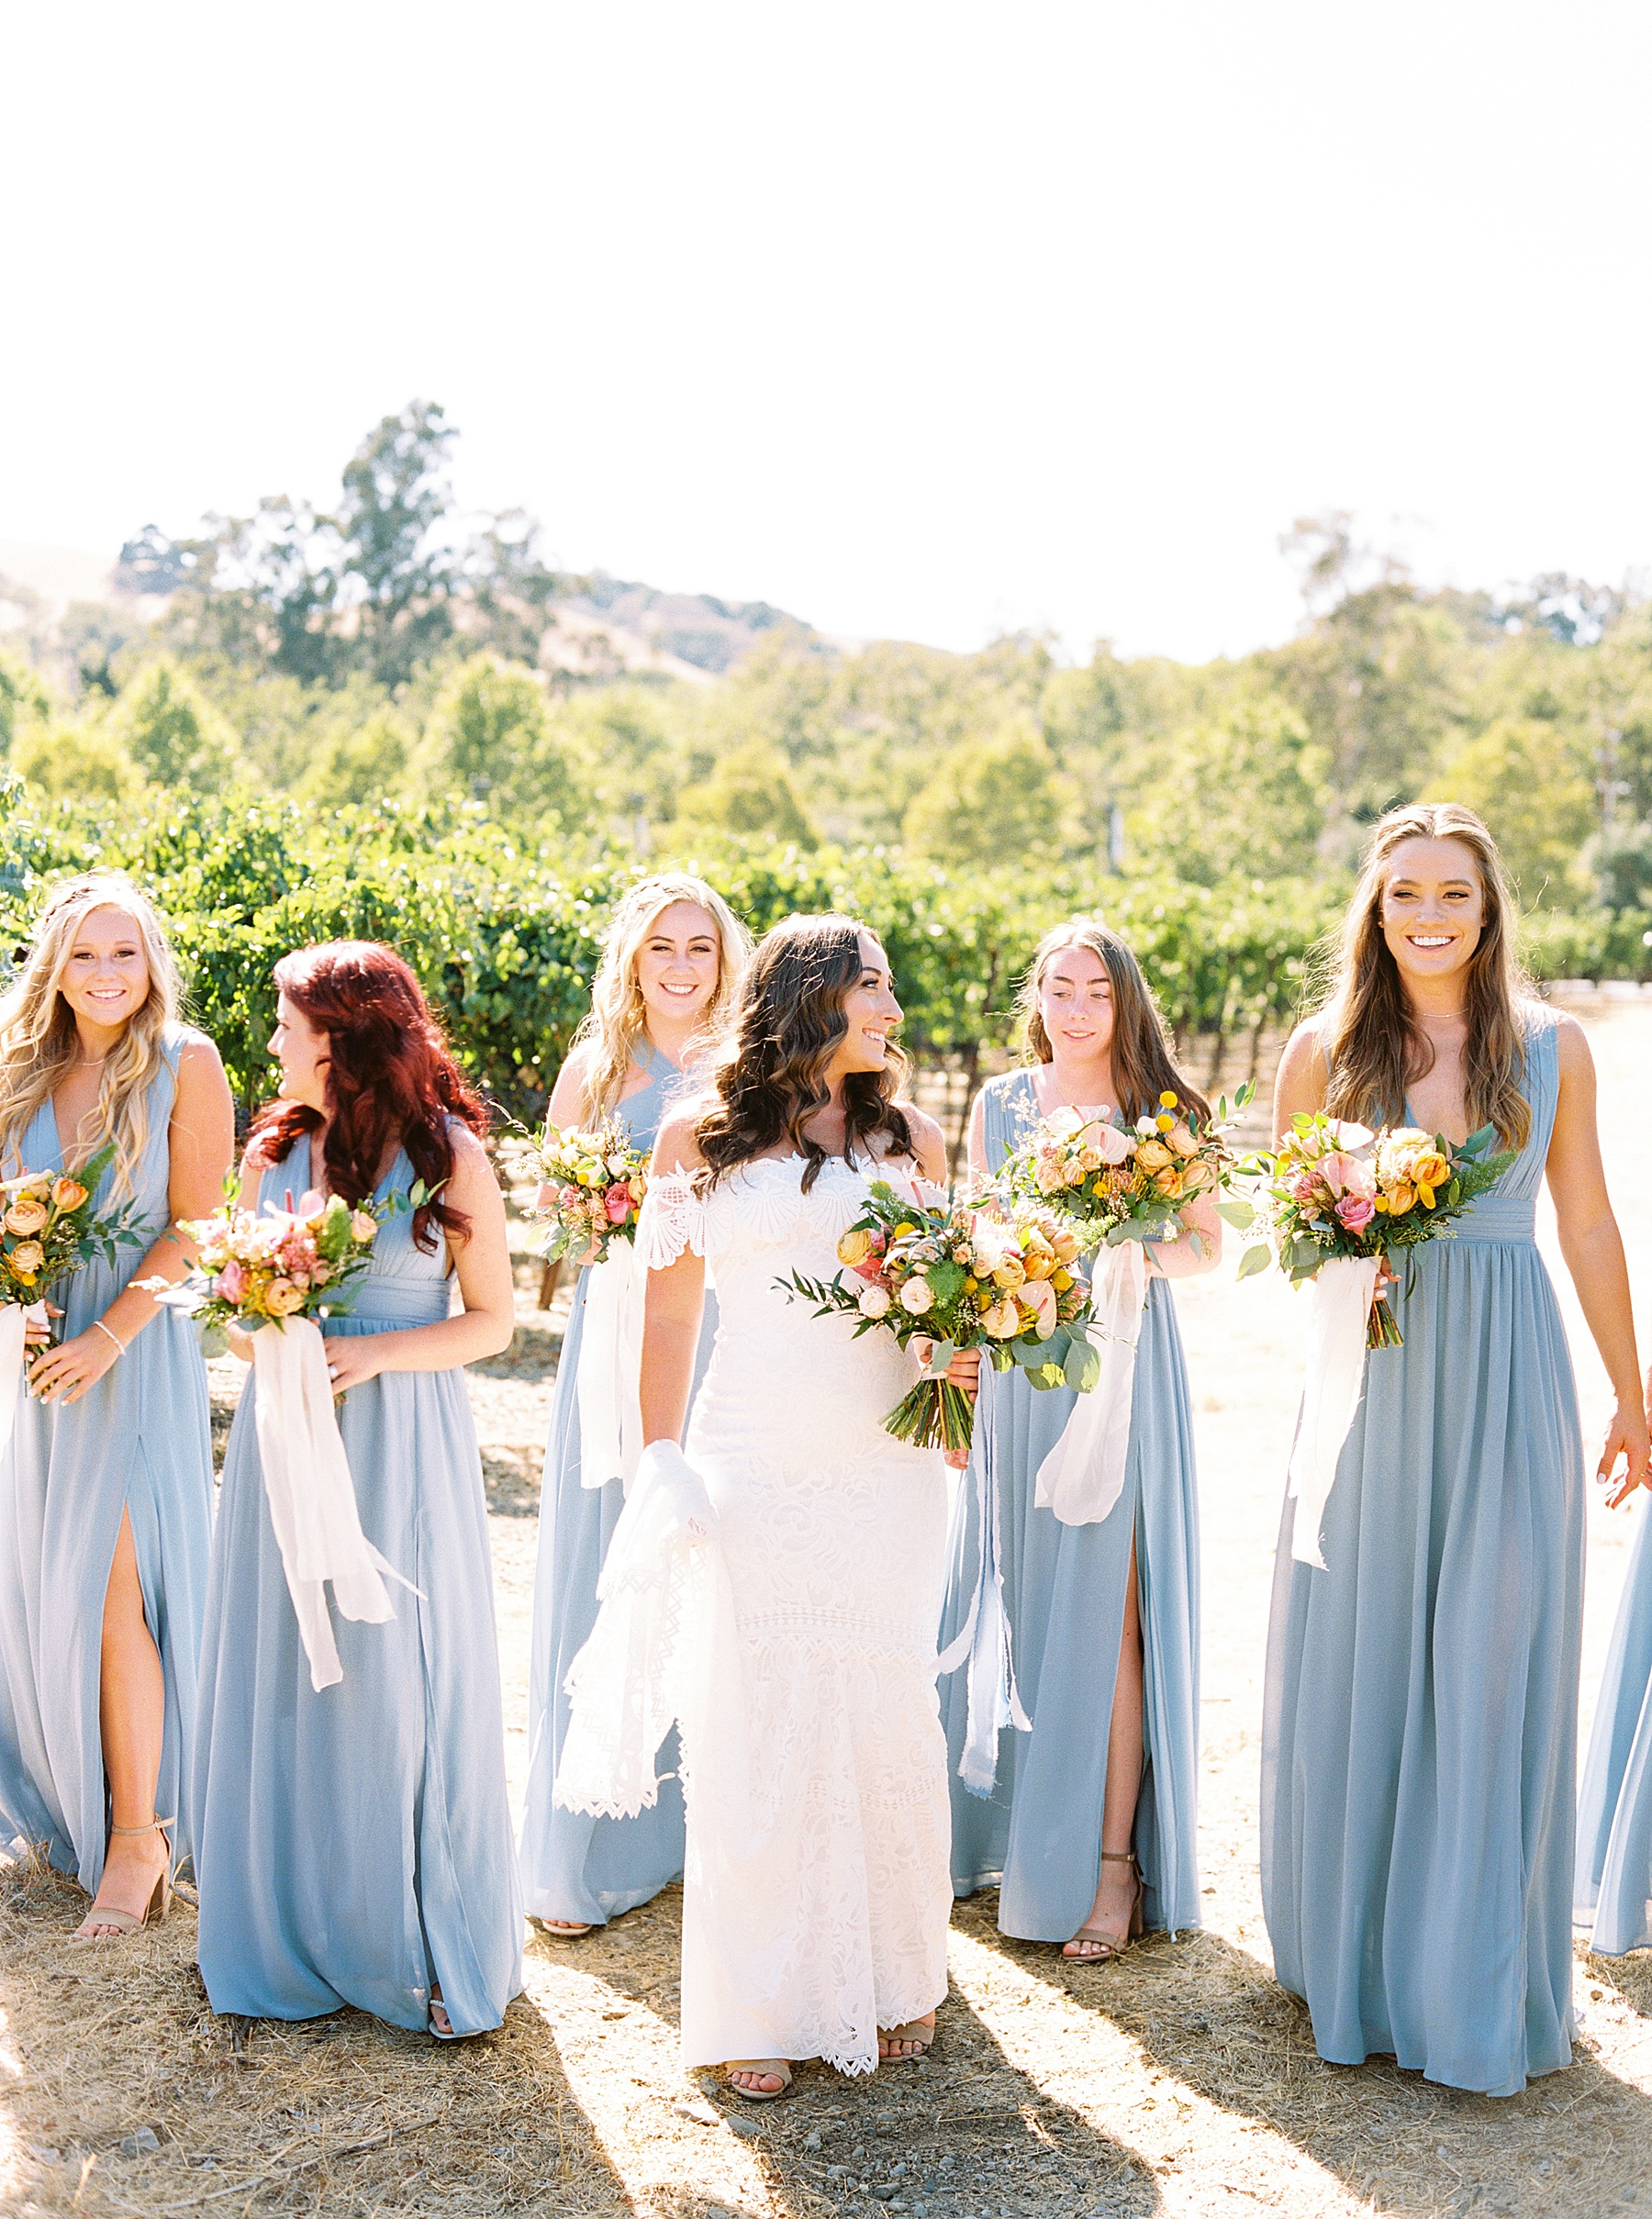 Wente Wedding with A Tropical Color Palette - Ashley & Mike - Featured on Inspired by This - Ashley Baumgartner_0054.jpg